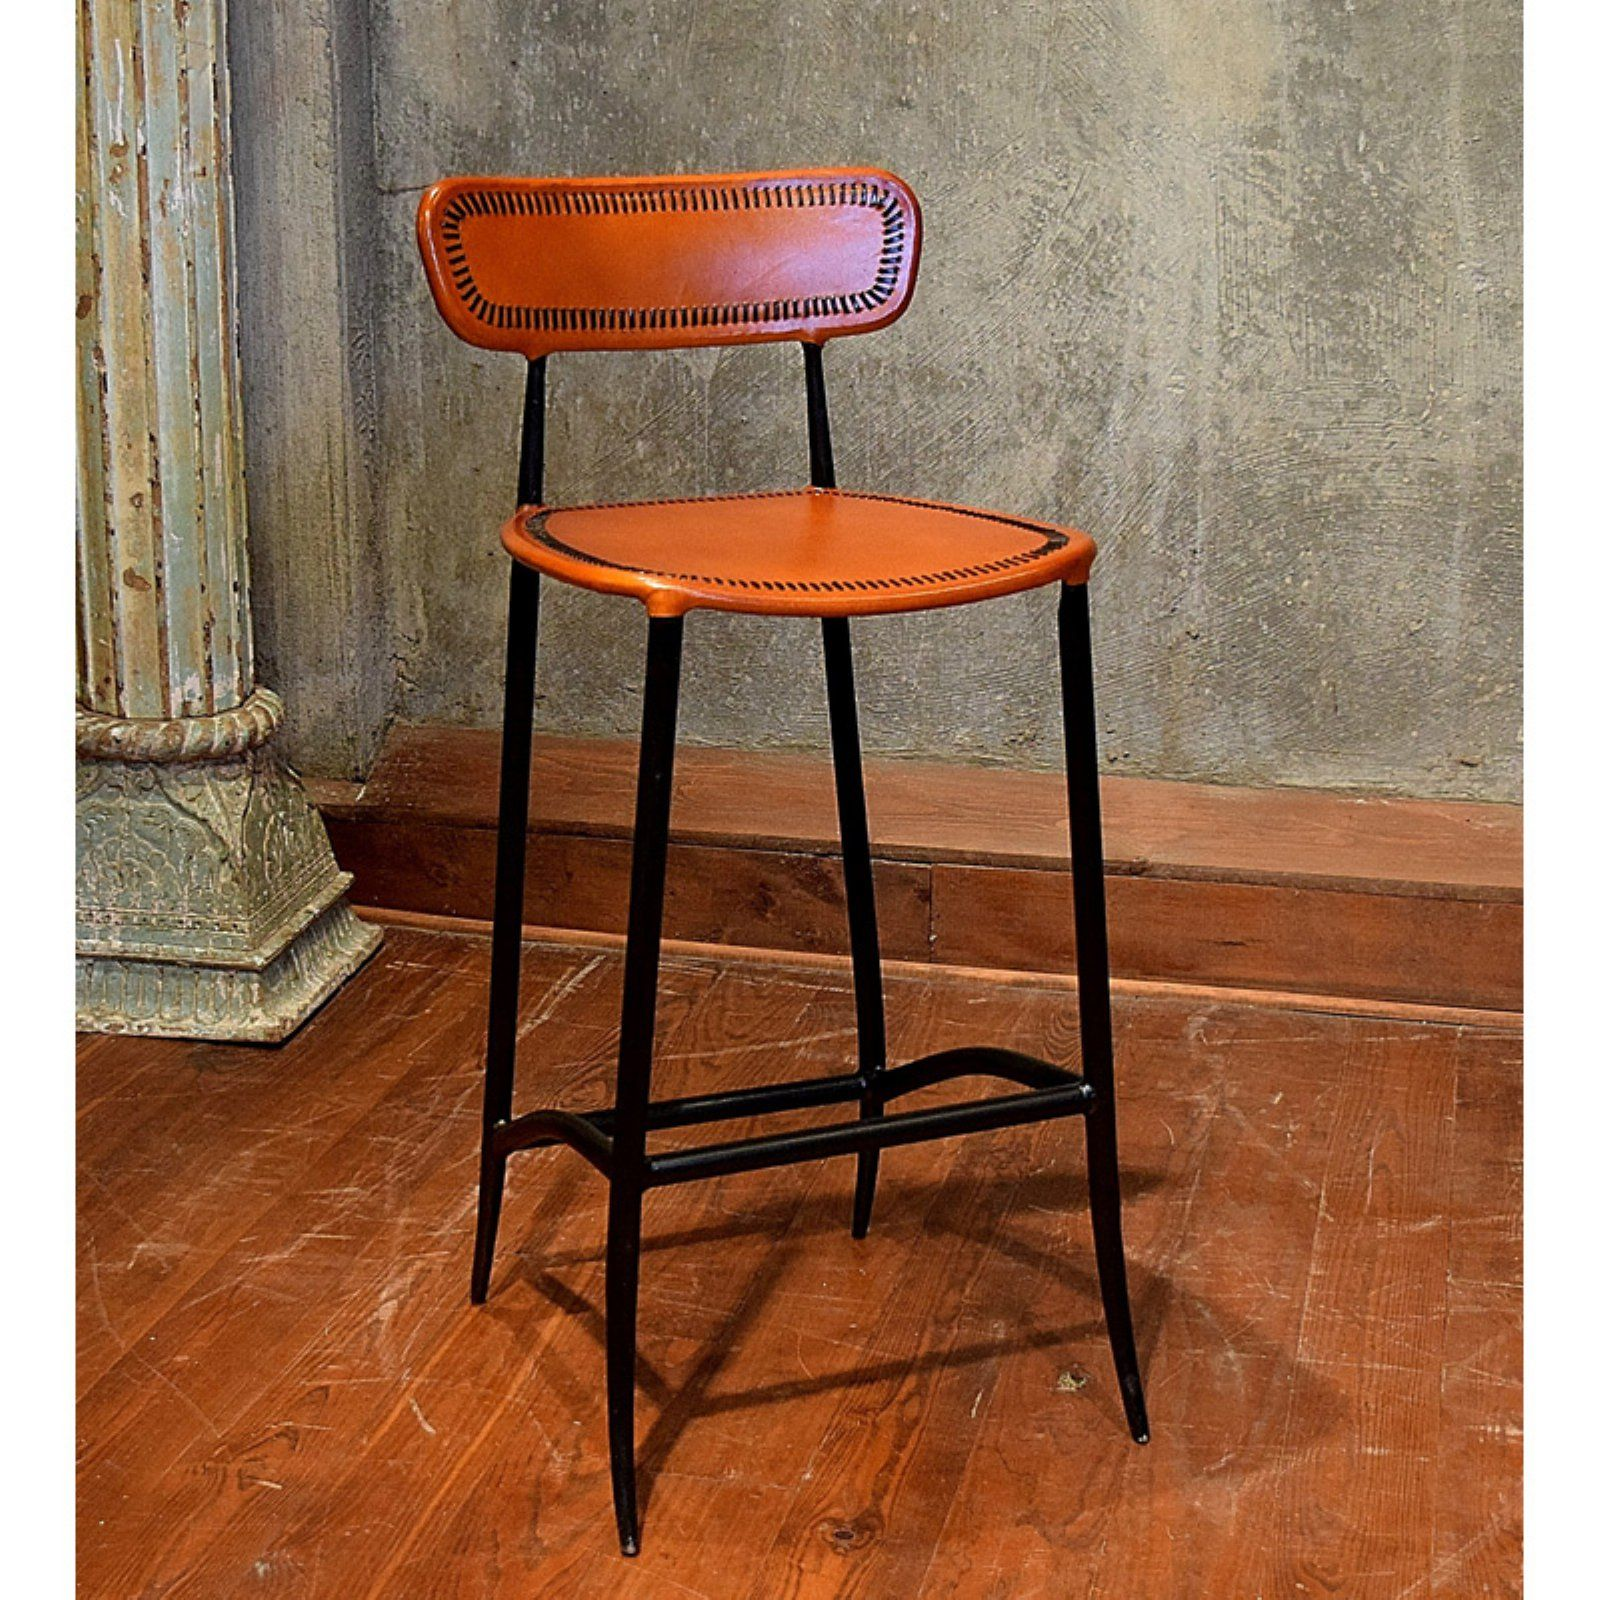 Sensational William Sheppee Rocket Bar Stool Apricot Products In 2019 Machost Co Dining Chair Design Ideas Machostcouk